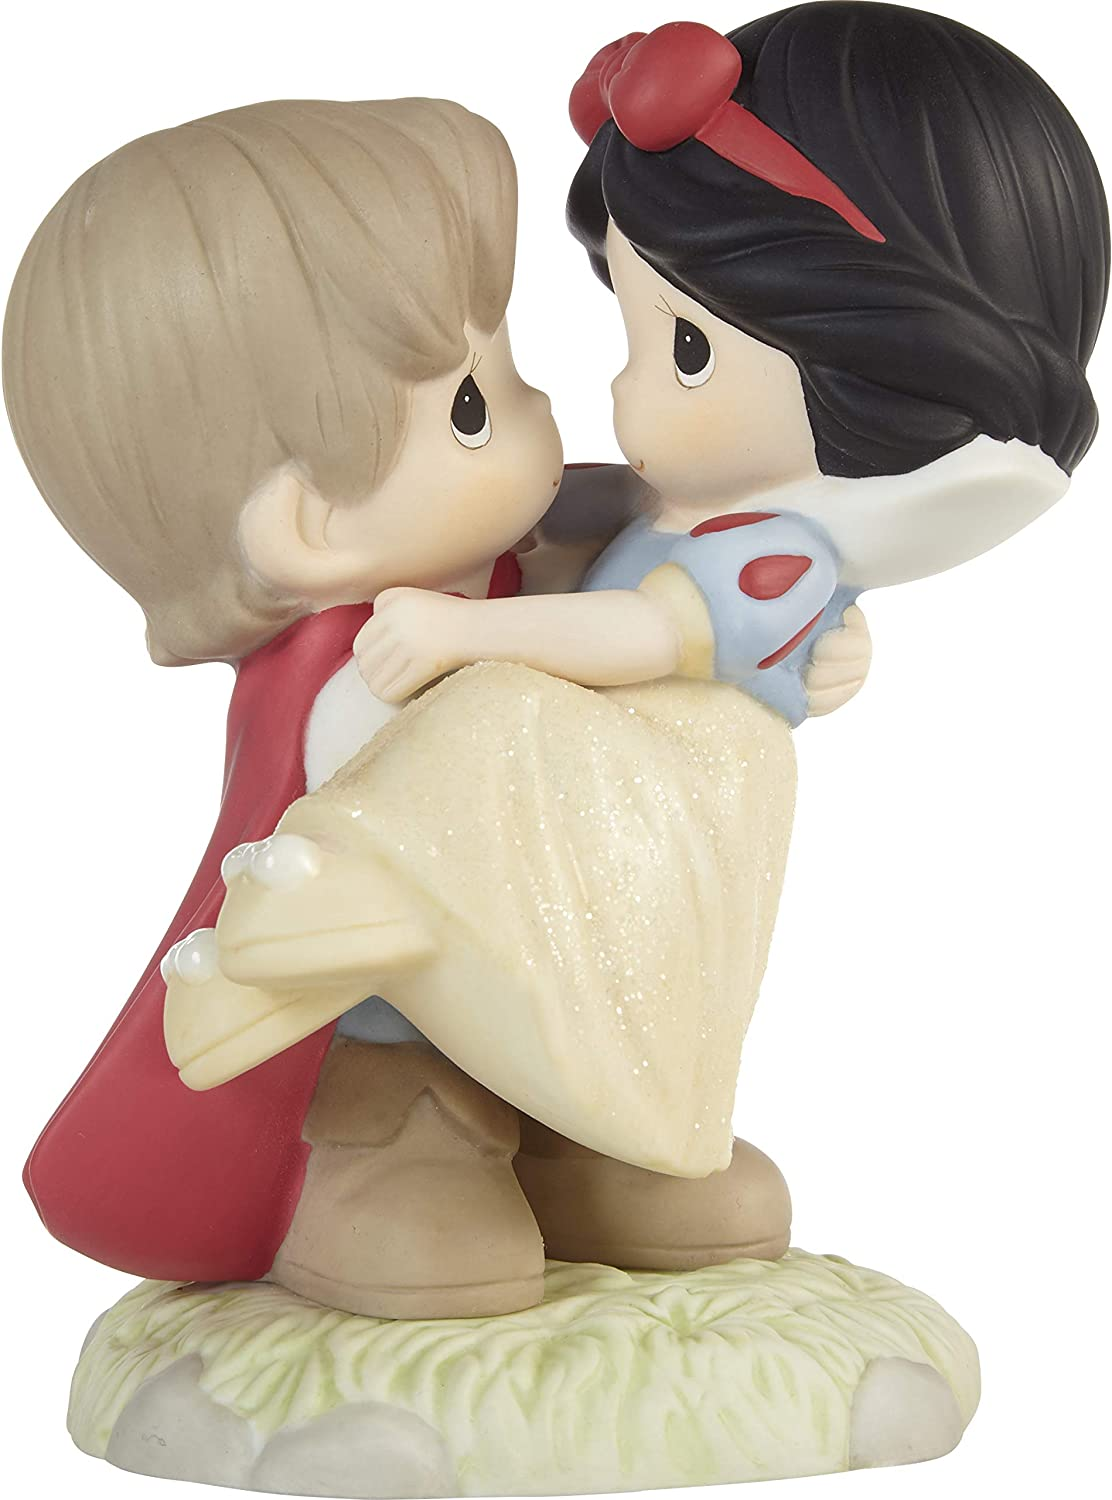 Precious Moments 203064 Disney Snow White and The Seven Dwarfs and They Lived Happily Ever After Bisque Porcelain Figurine